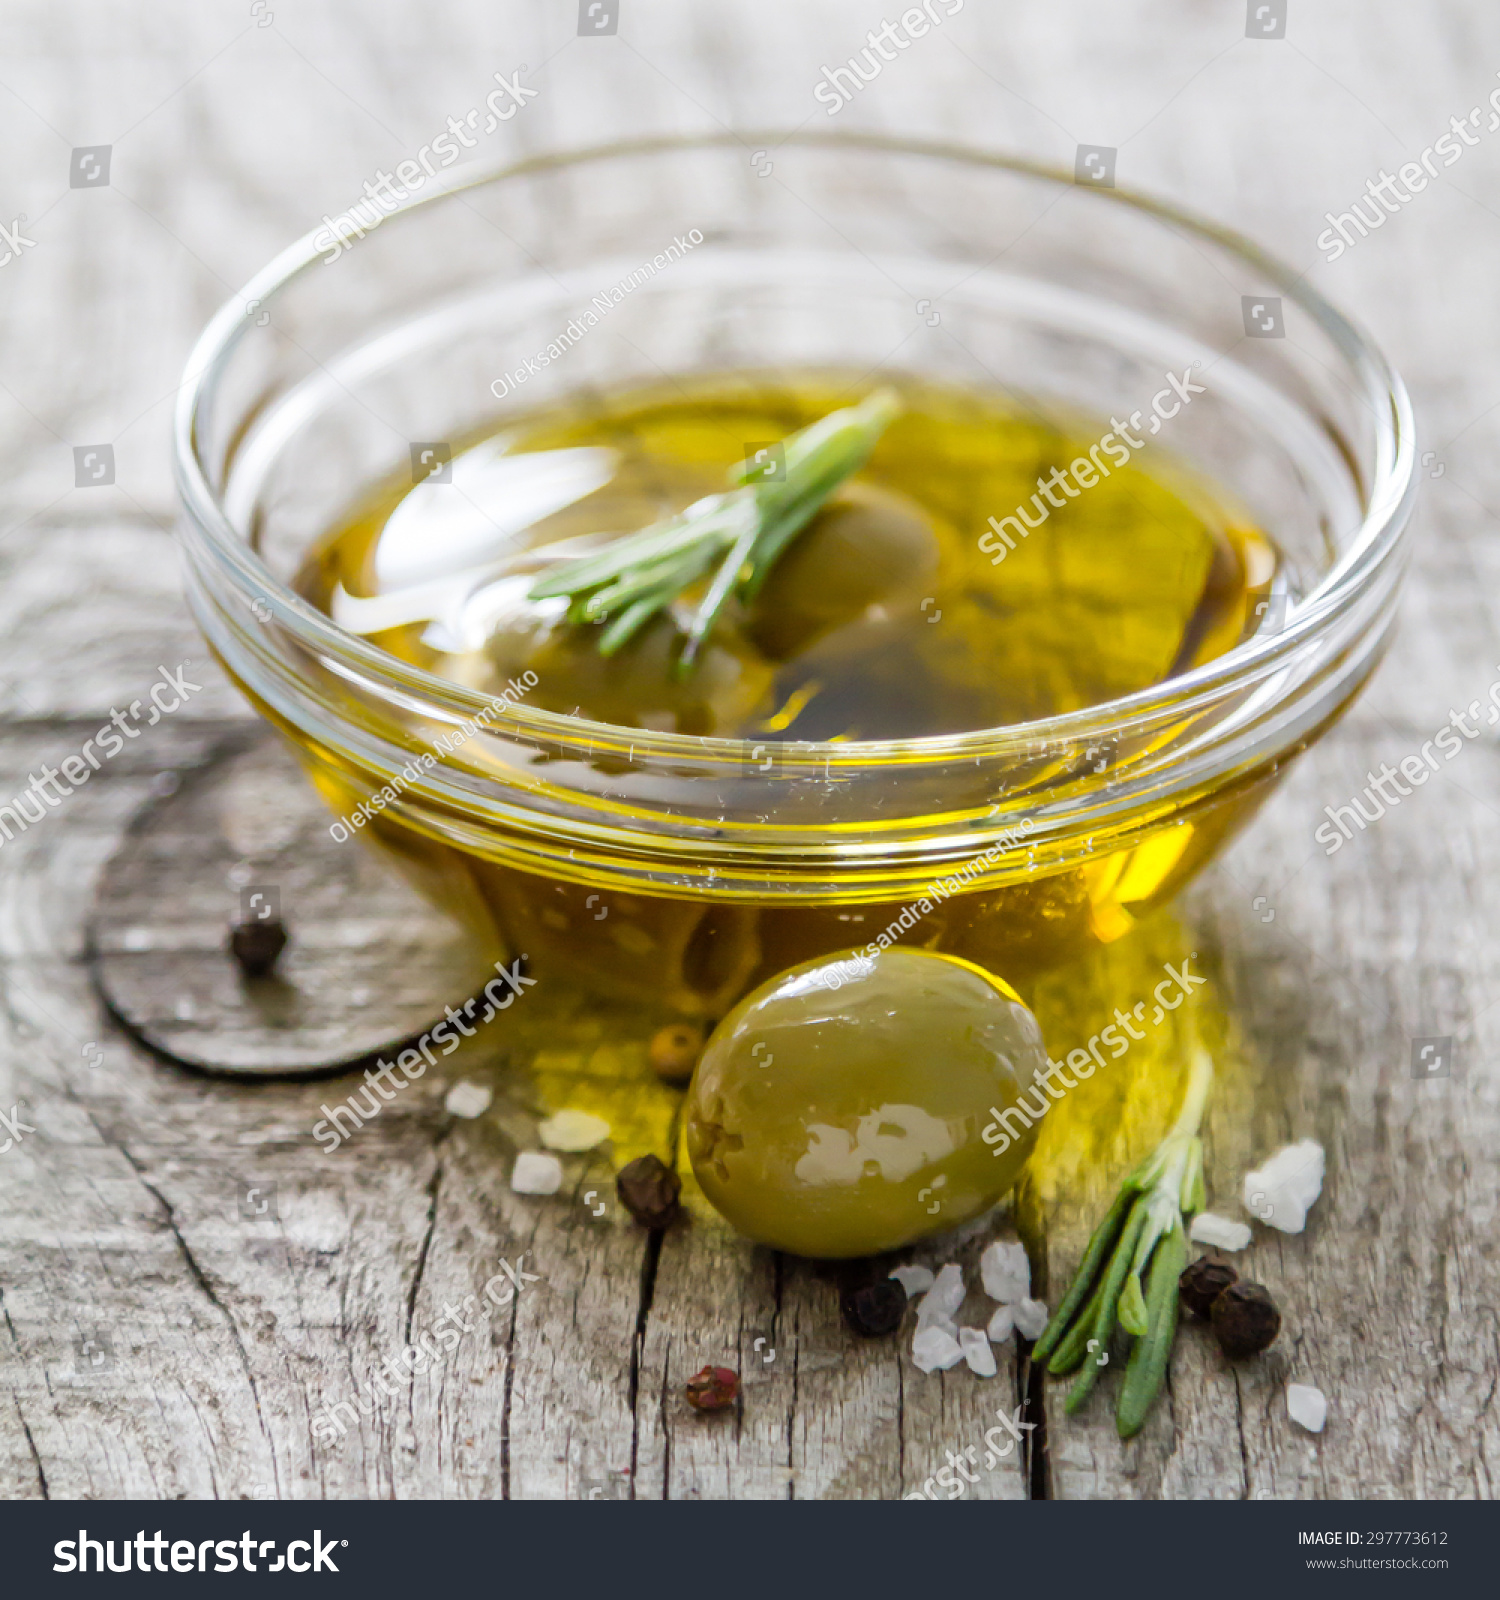 ... in glass bowl with oil, rosemary, salt, pepper, rustic wood background